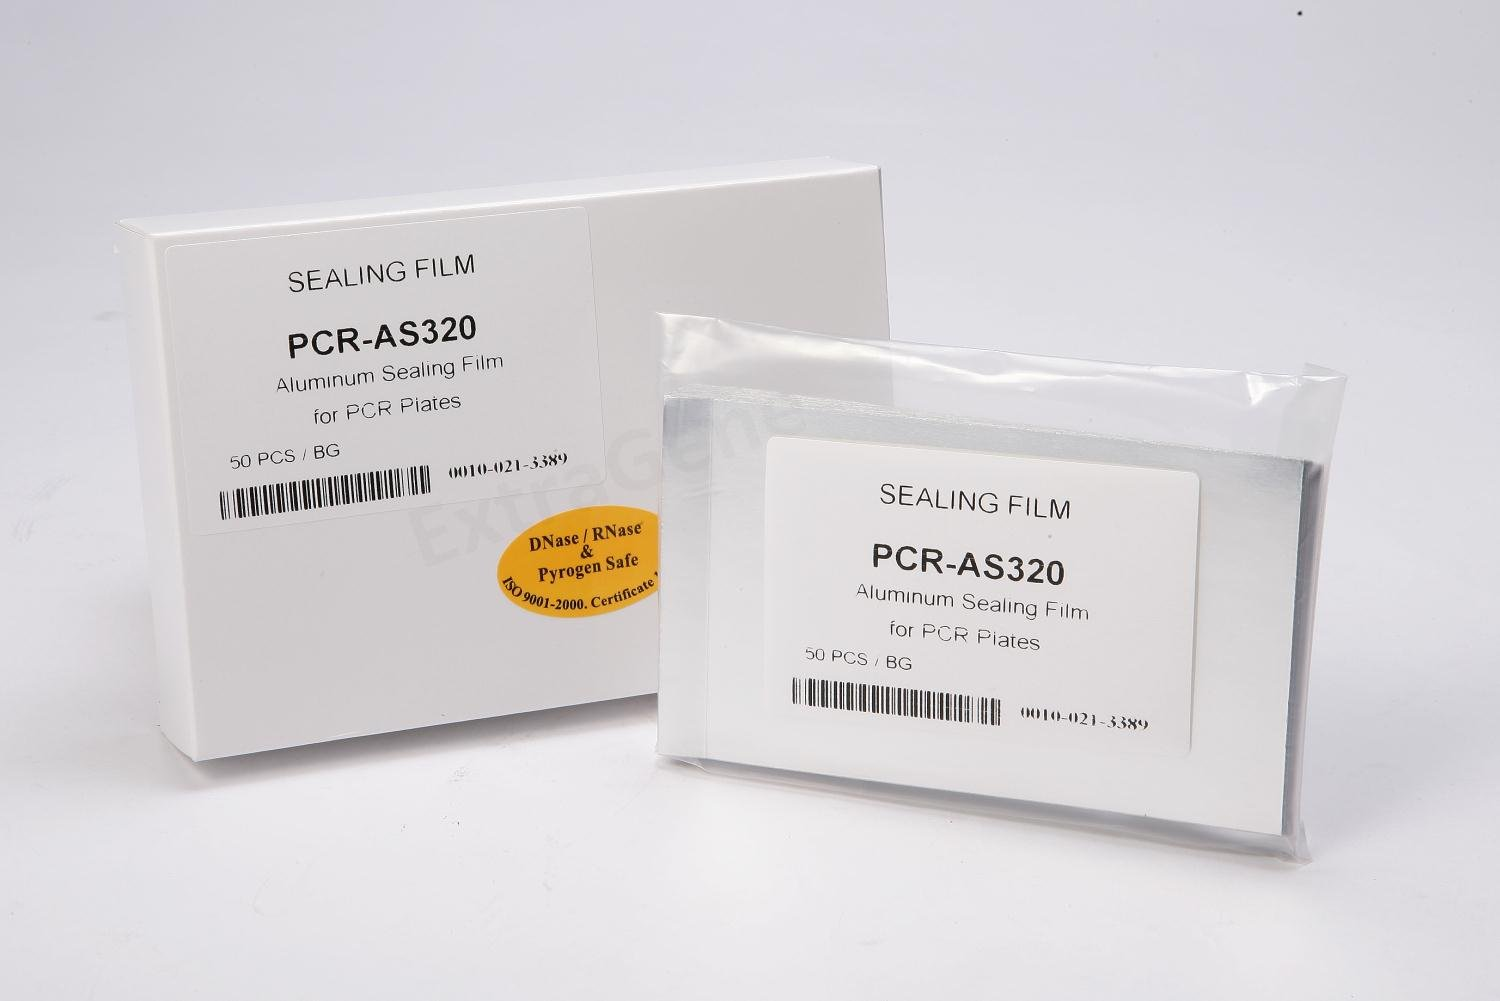 ExtraGene PCR-AS320 Aluminiun Sealing Film for PCR 96 well Plate (Bag of 50) Inc.